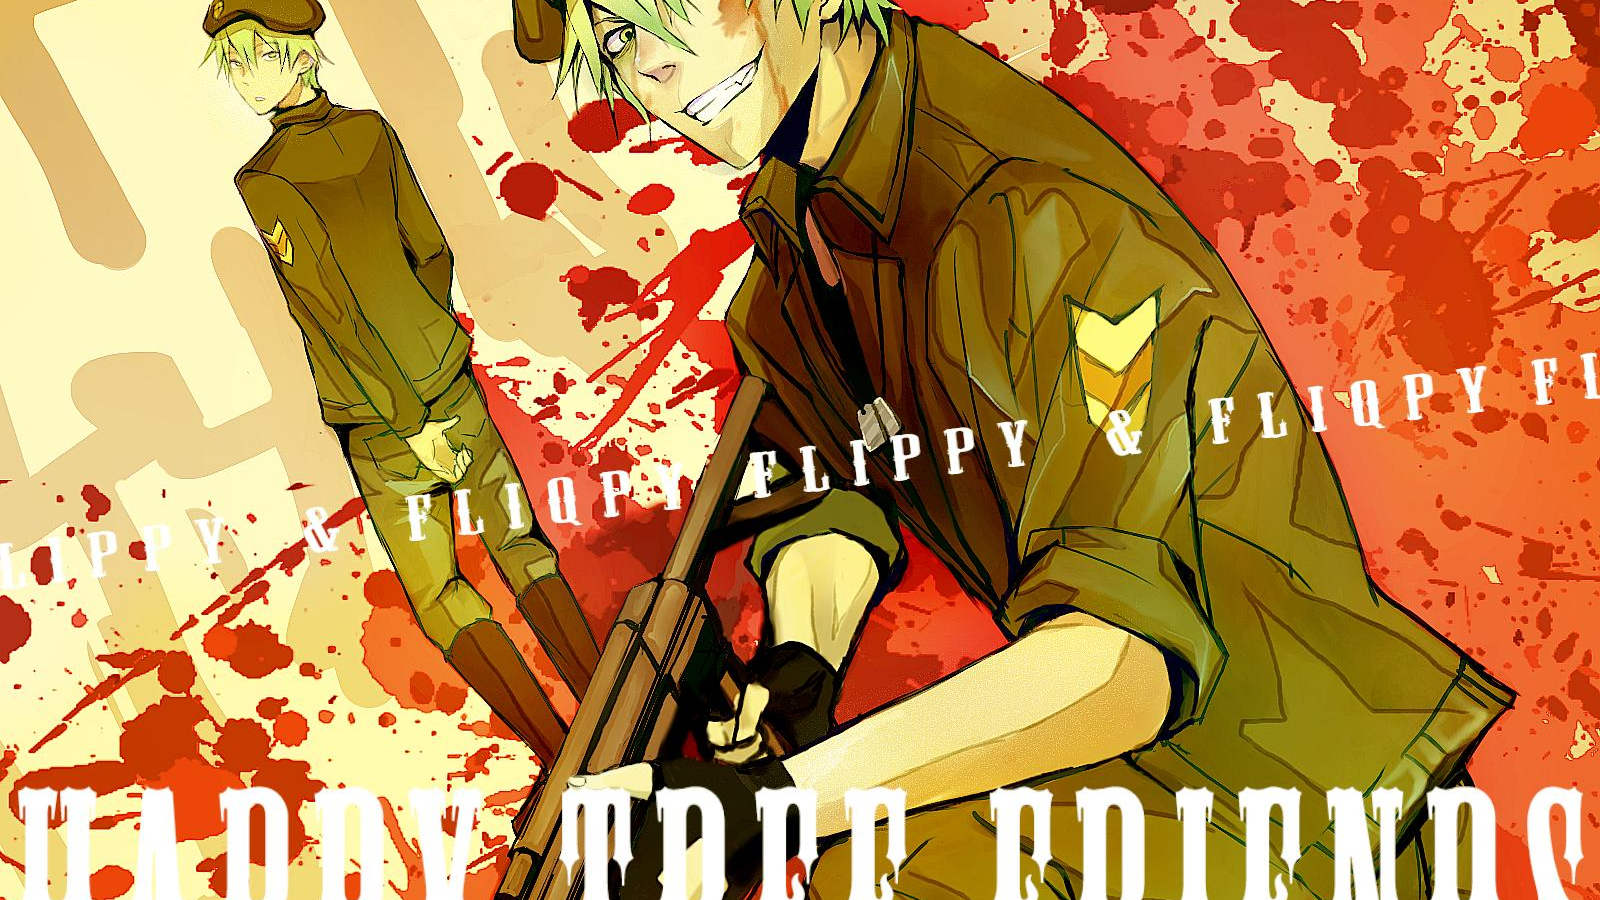 Free Download Happy Tree Friends Images Human Evil Flippy Hd